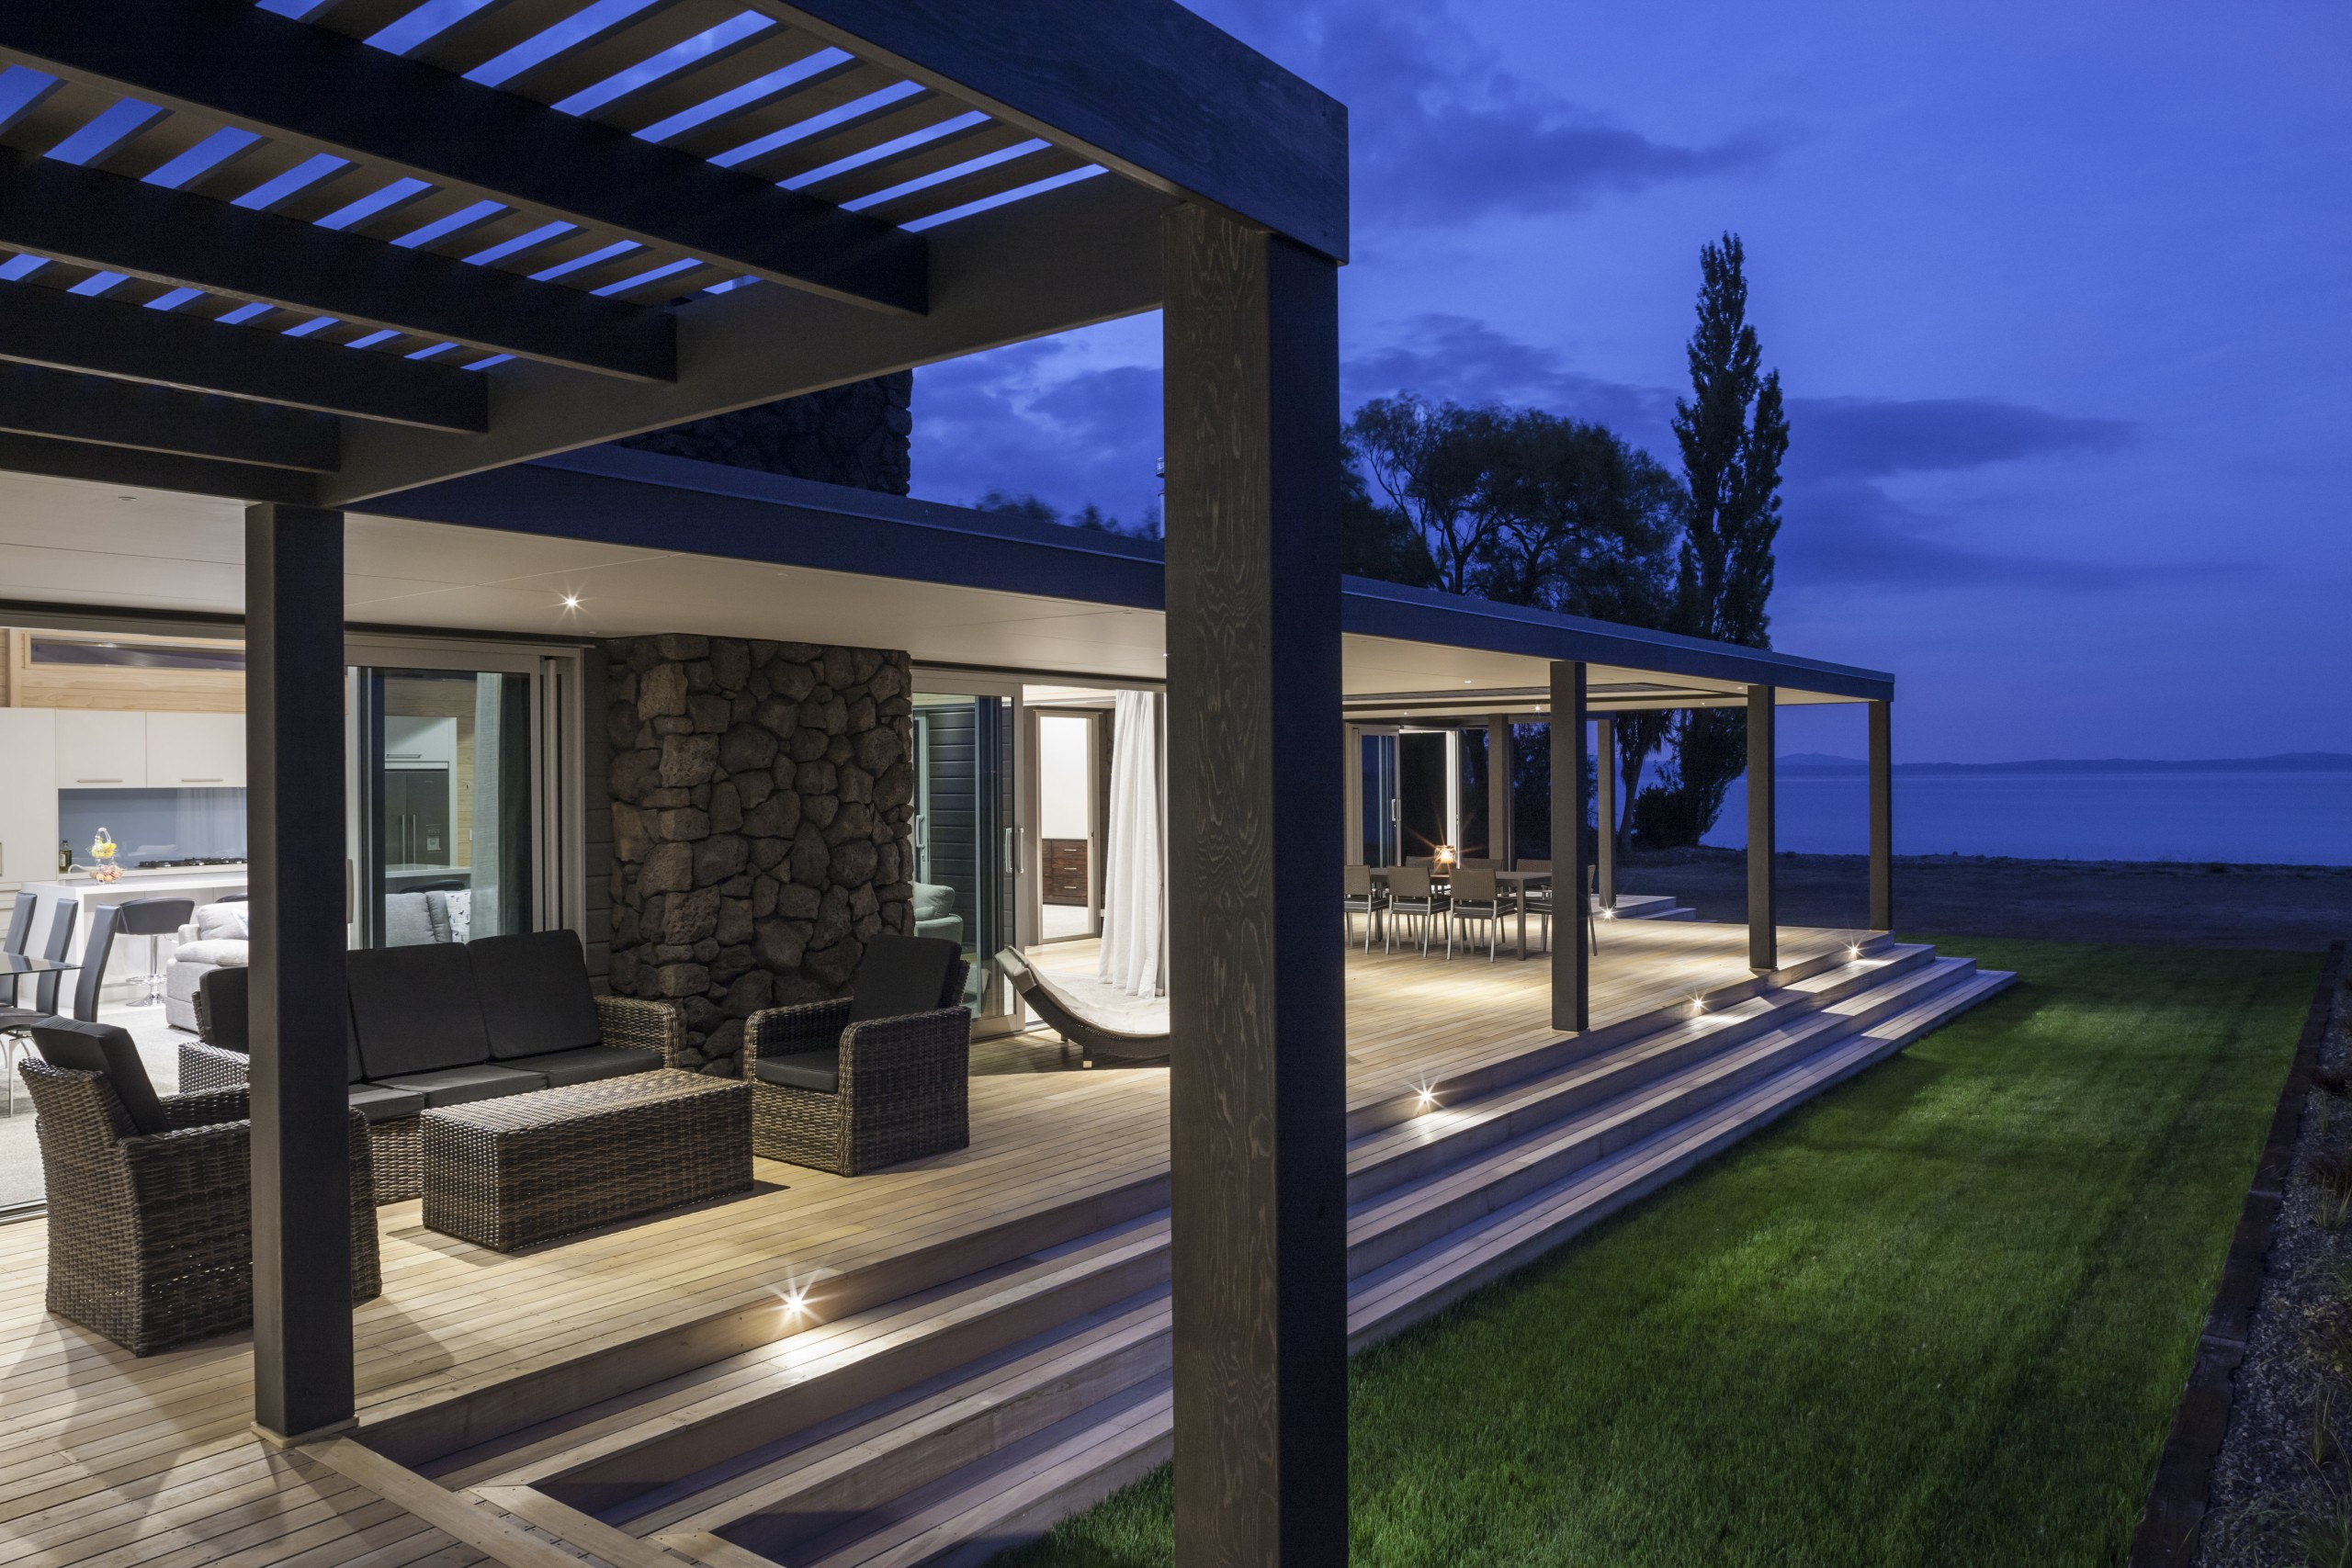 Lockwood Home built by Peter Richards - Lockwood home, house, lighting, outdoor structure, property, real estate, blue